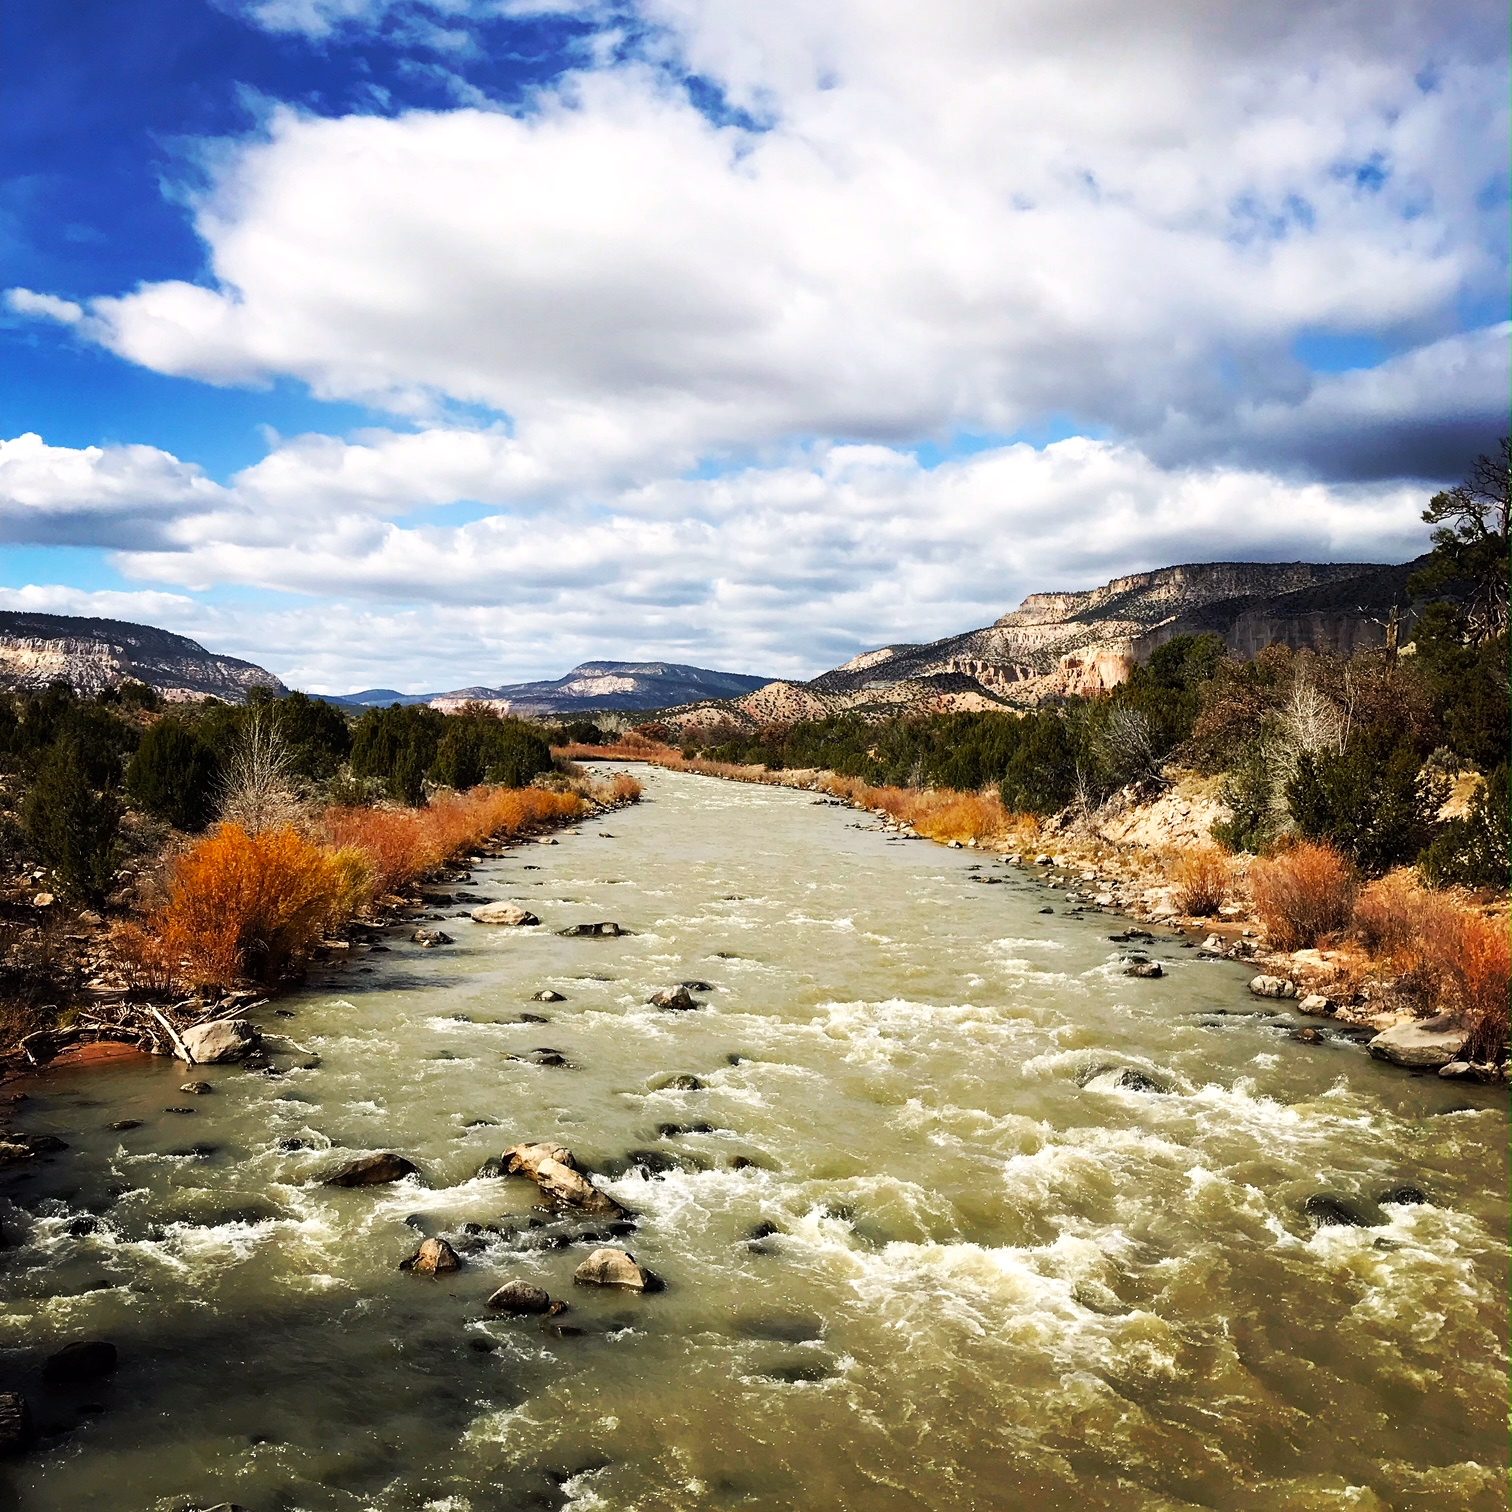 Santa Fe National Forest as Chama River Canyon Wilderness.